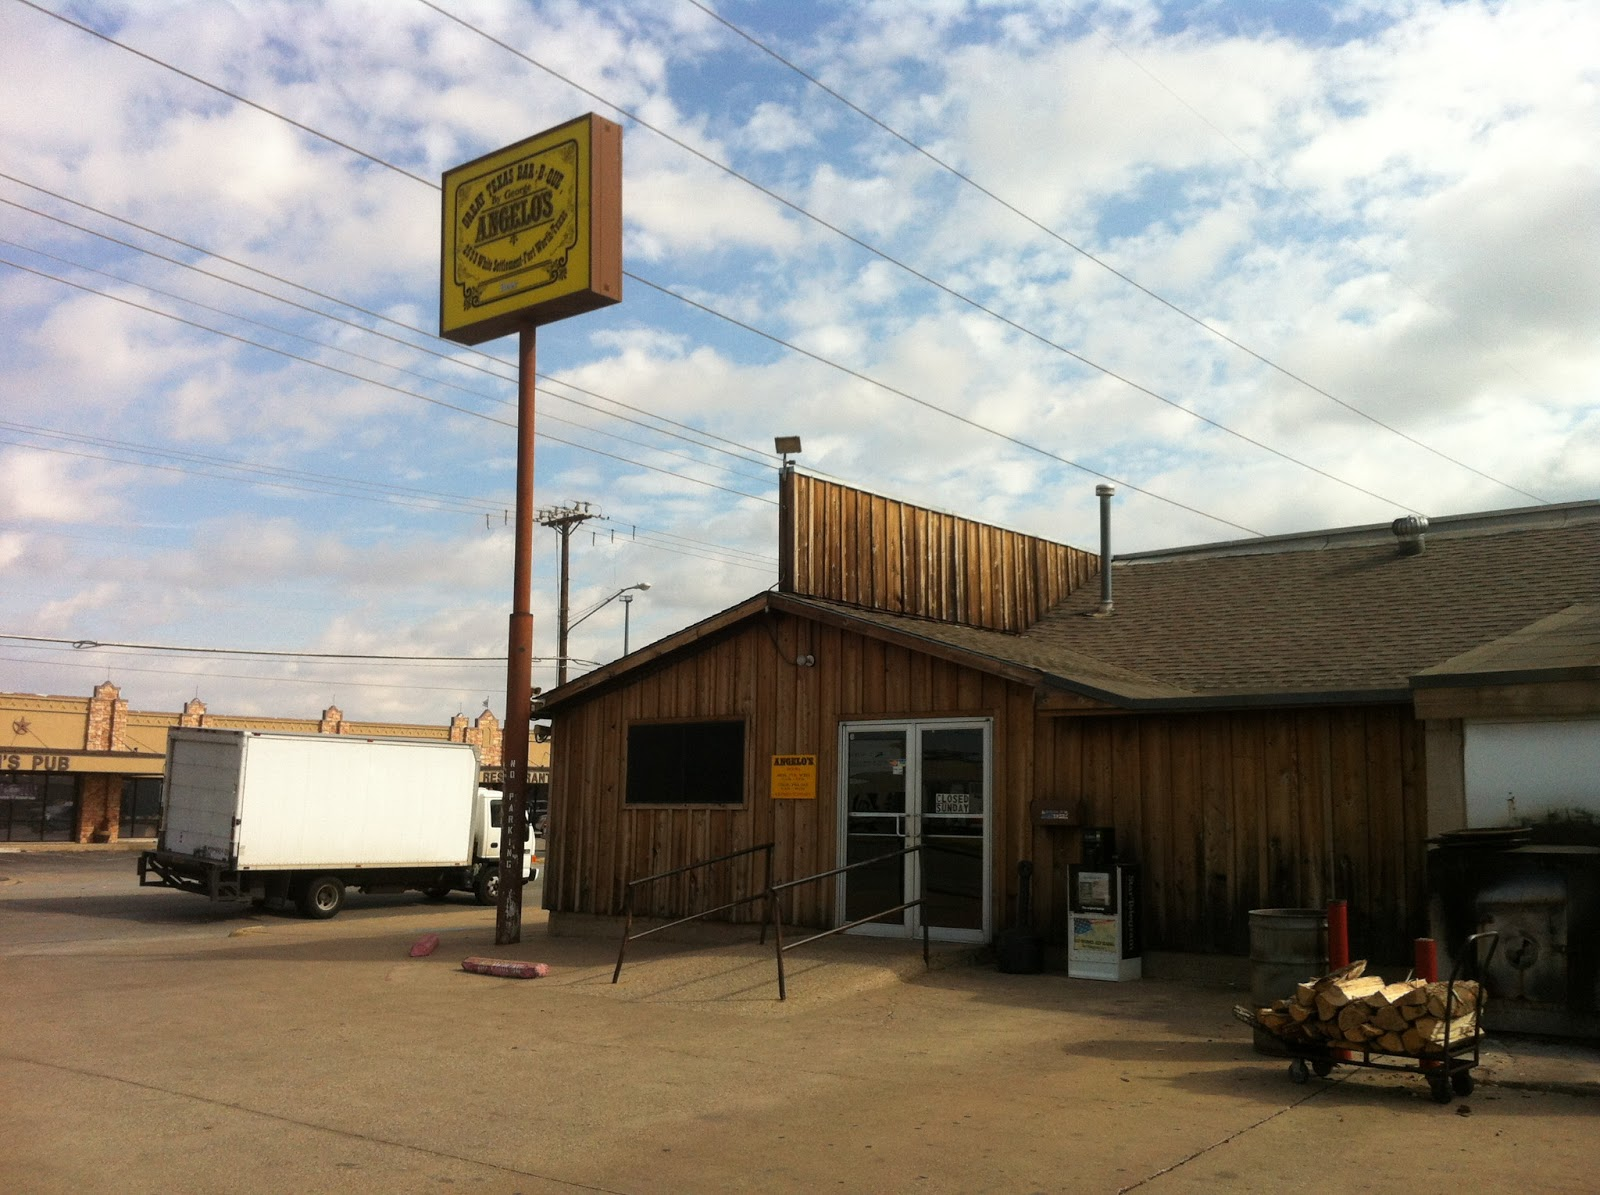 Angelo Fort Worth BBQ Barbecue Barbeque Bar-B-Que Texas